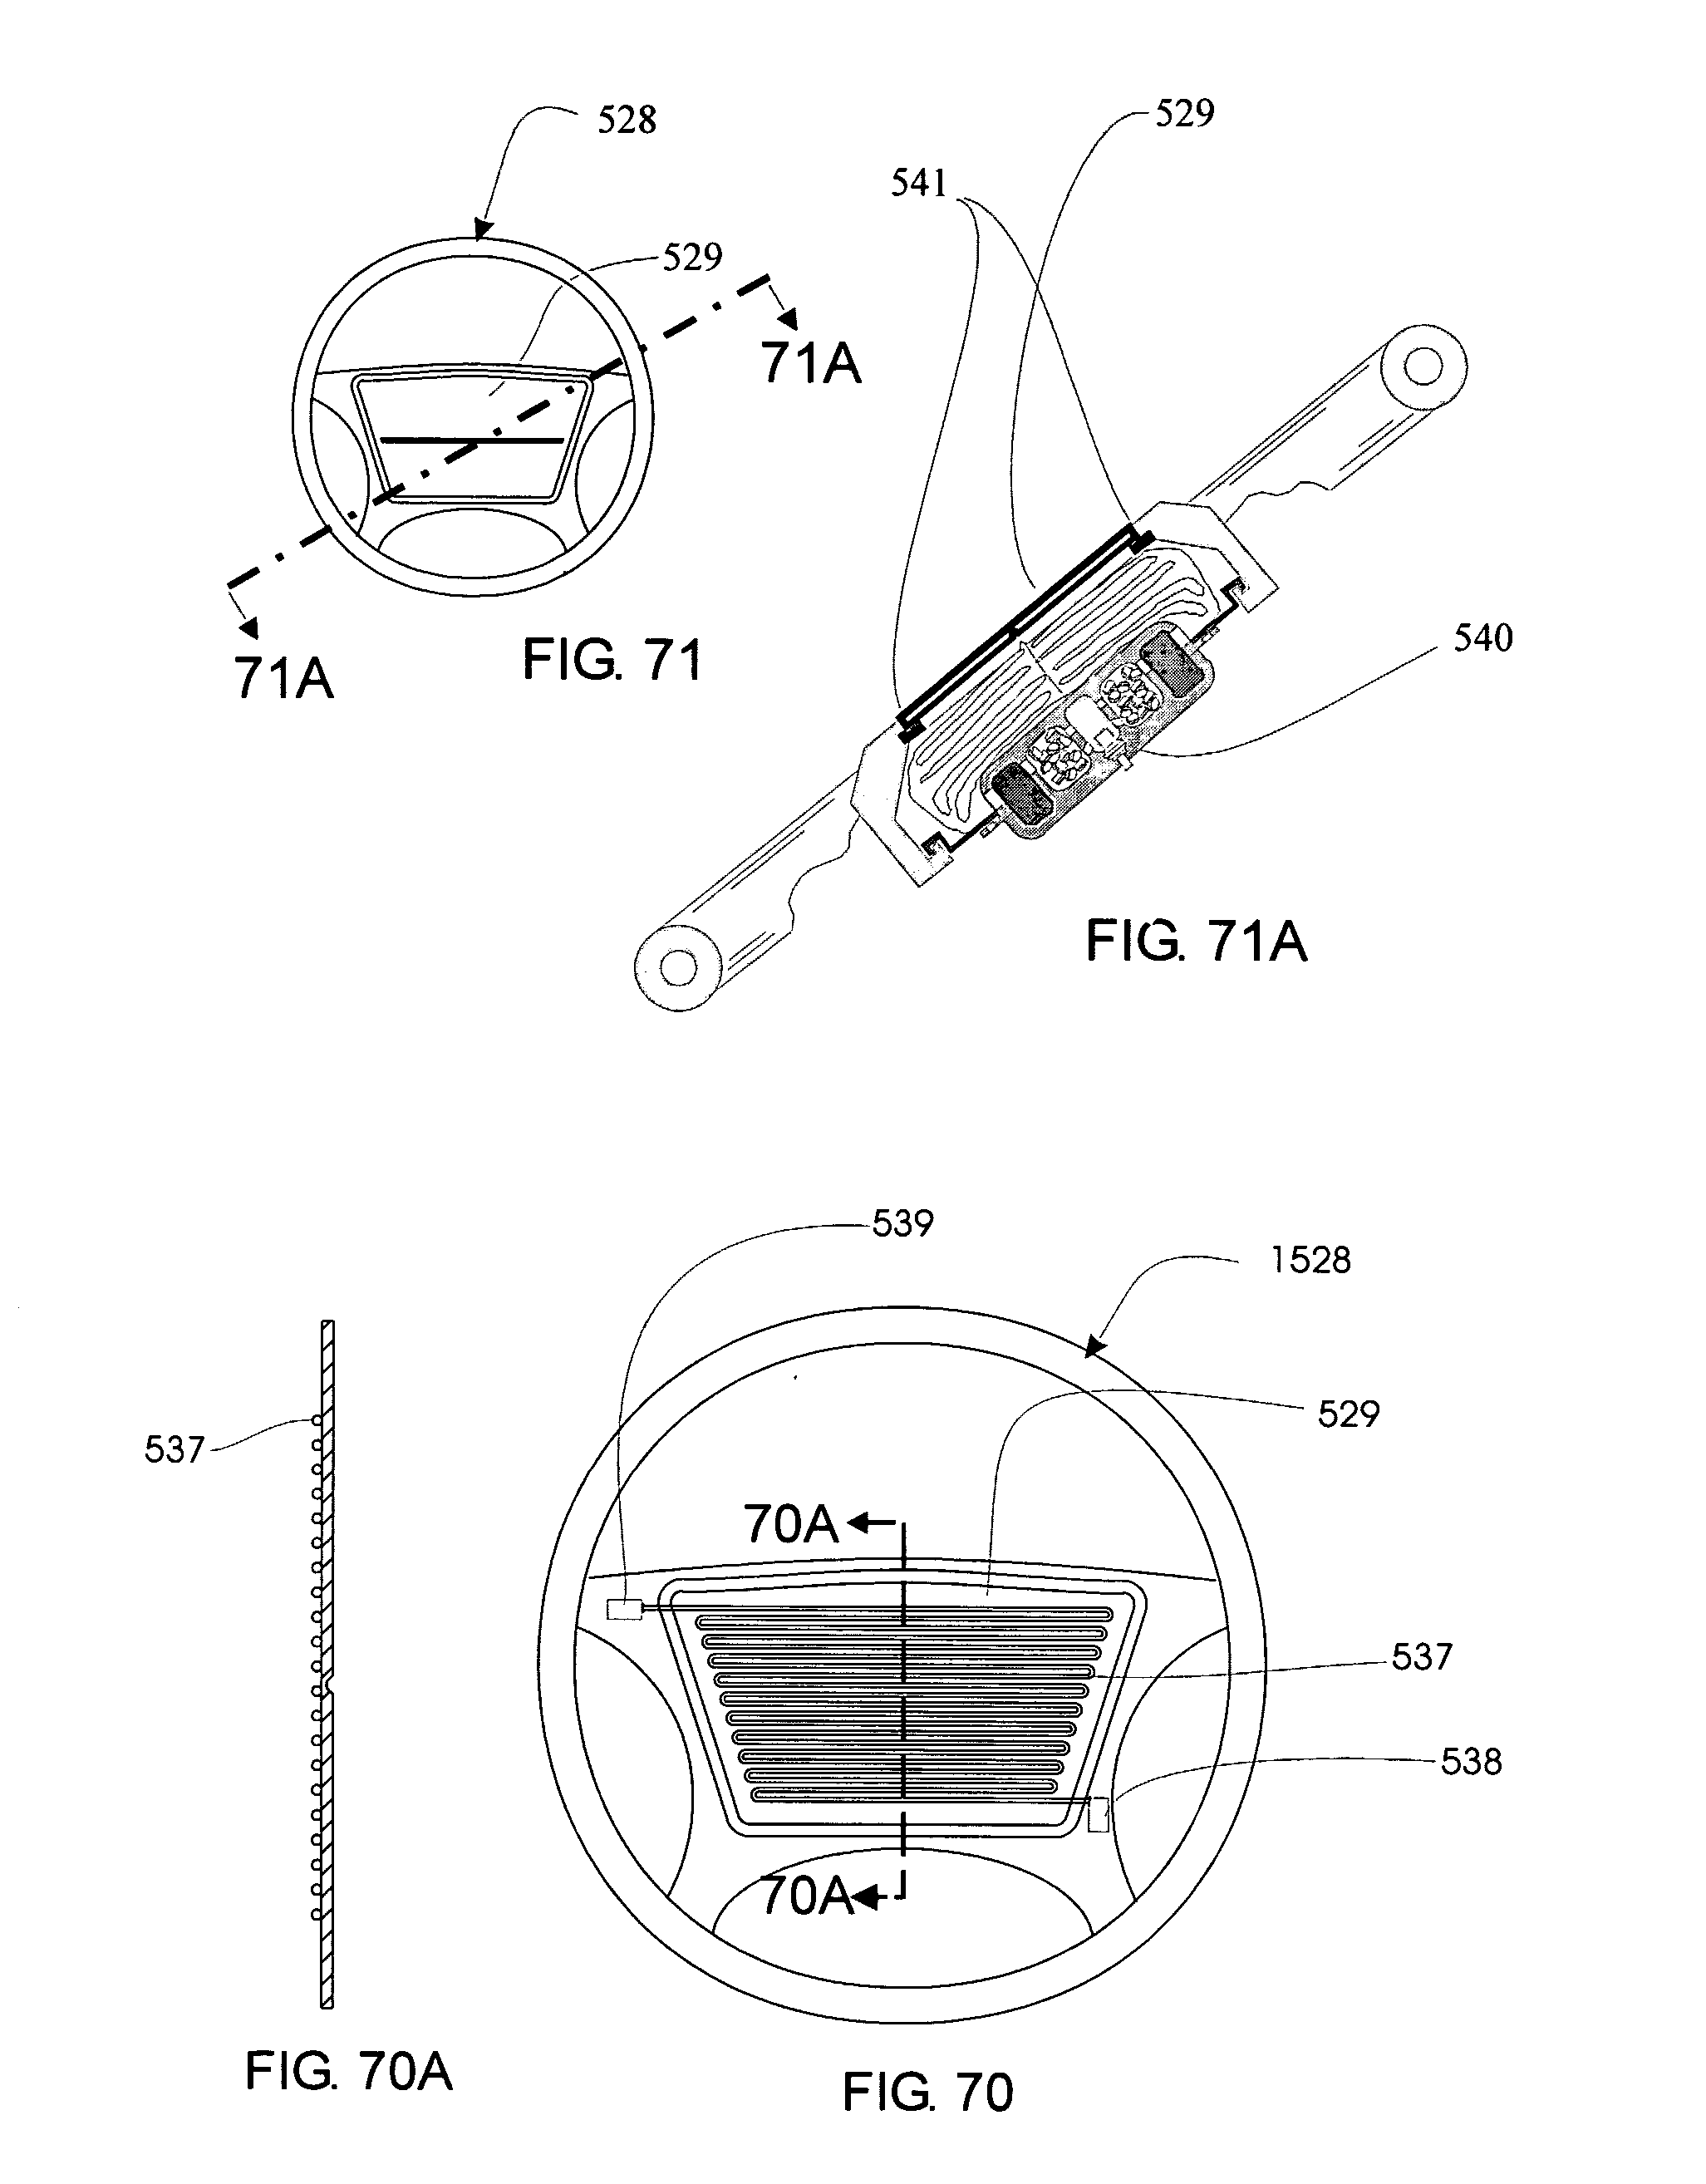 patent us 7 421 321 b2 Grounded B Phase Systems patent images